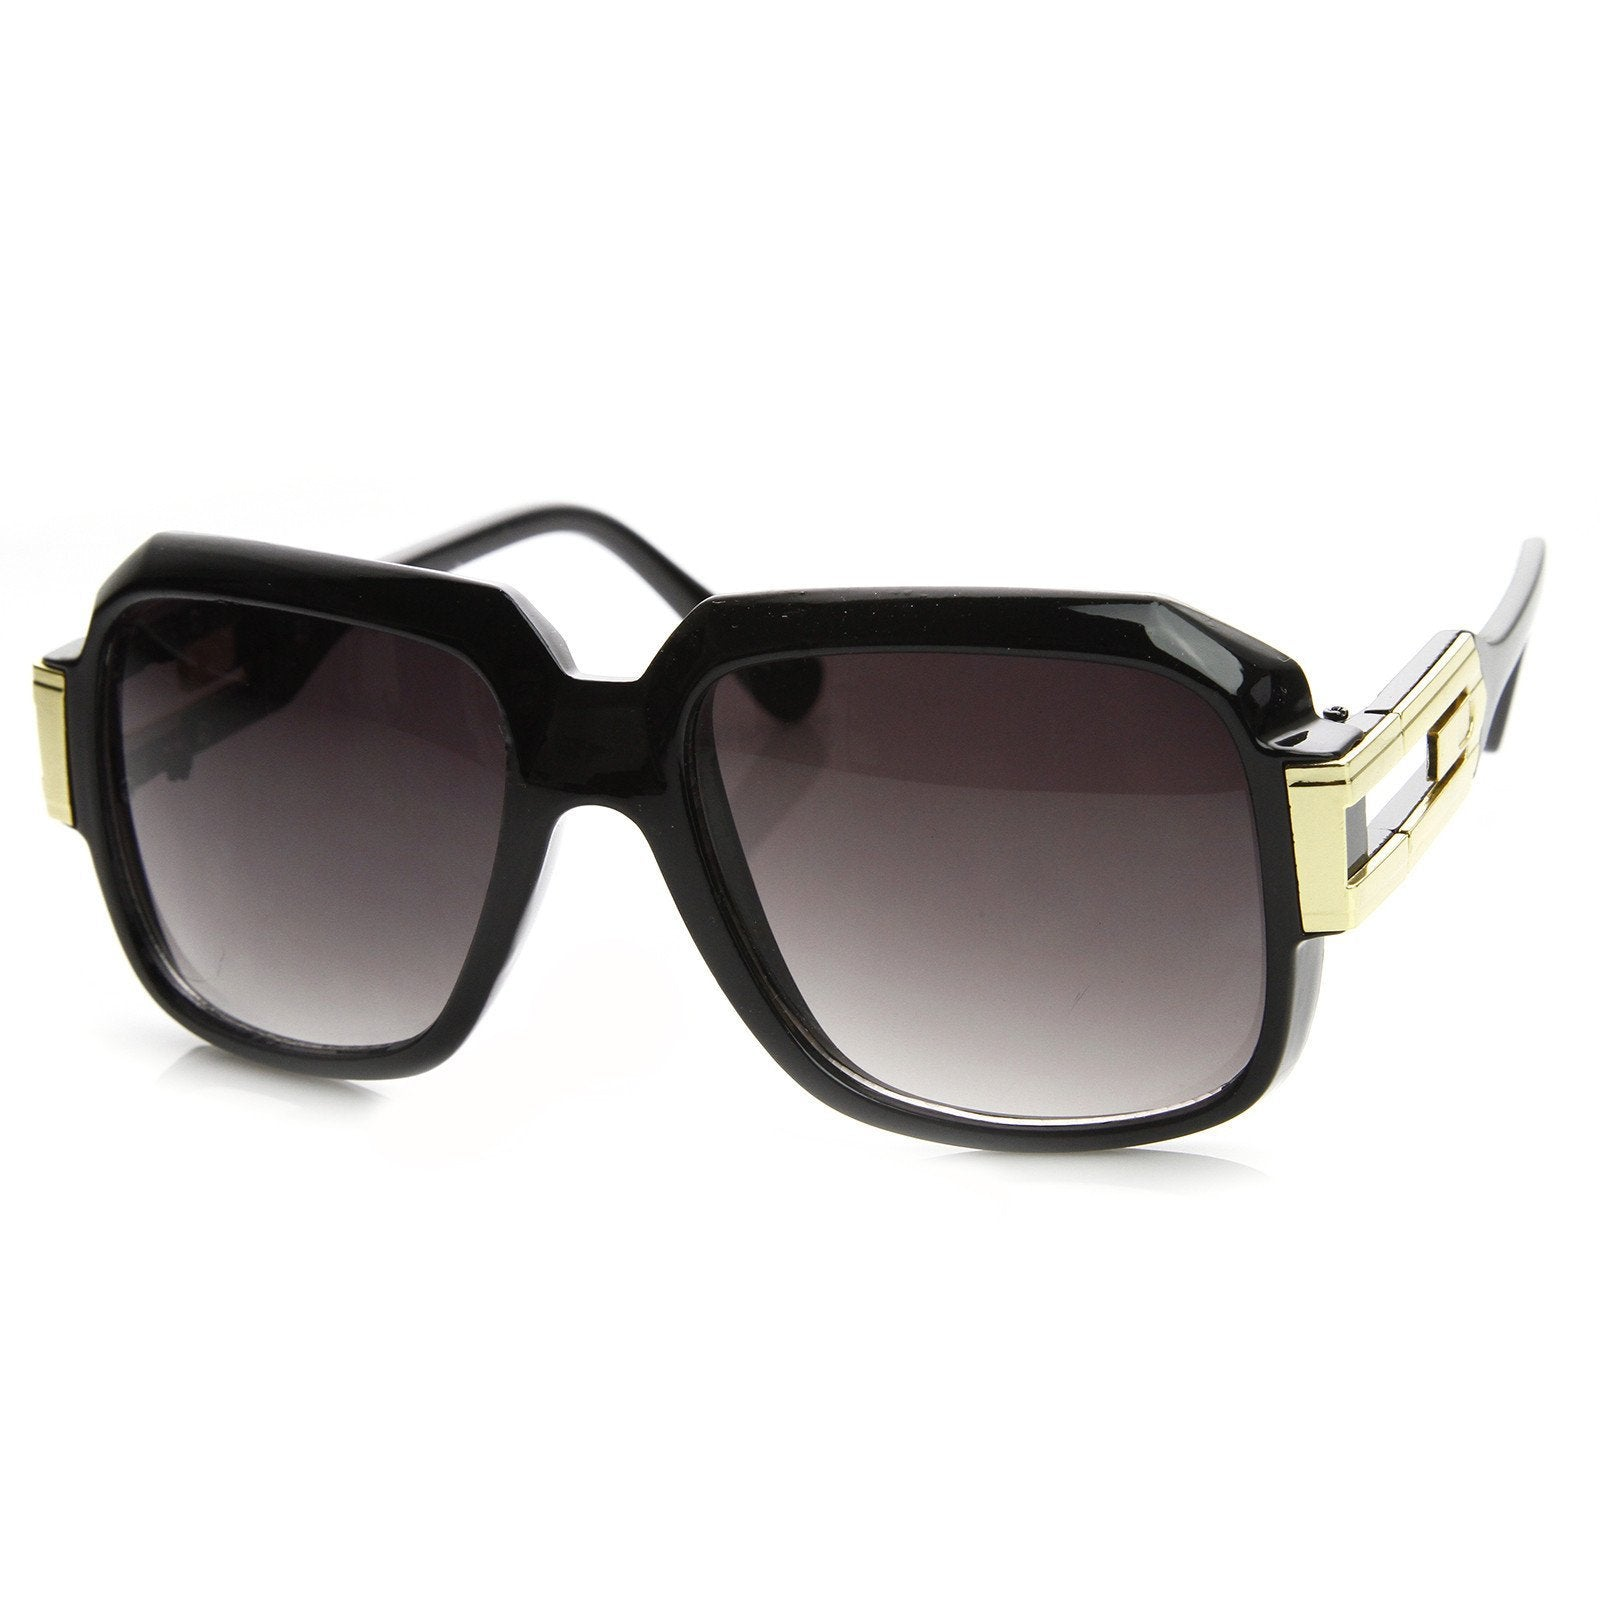 Square 80's Euro Aviator Sunglasses